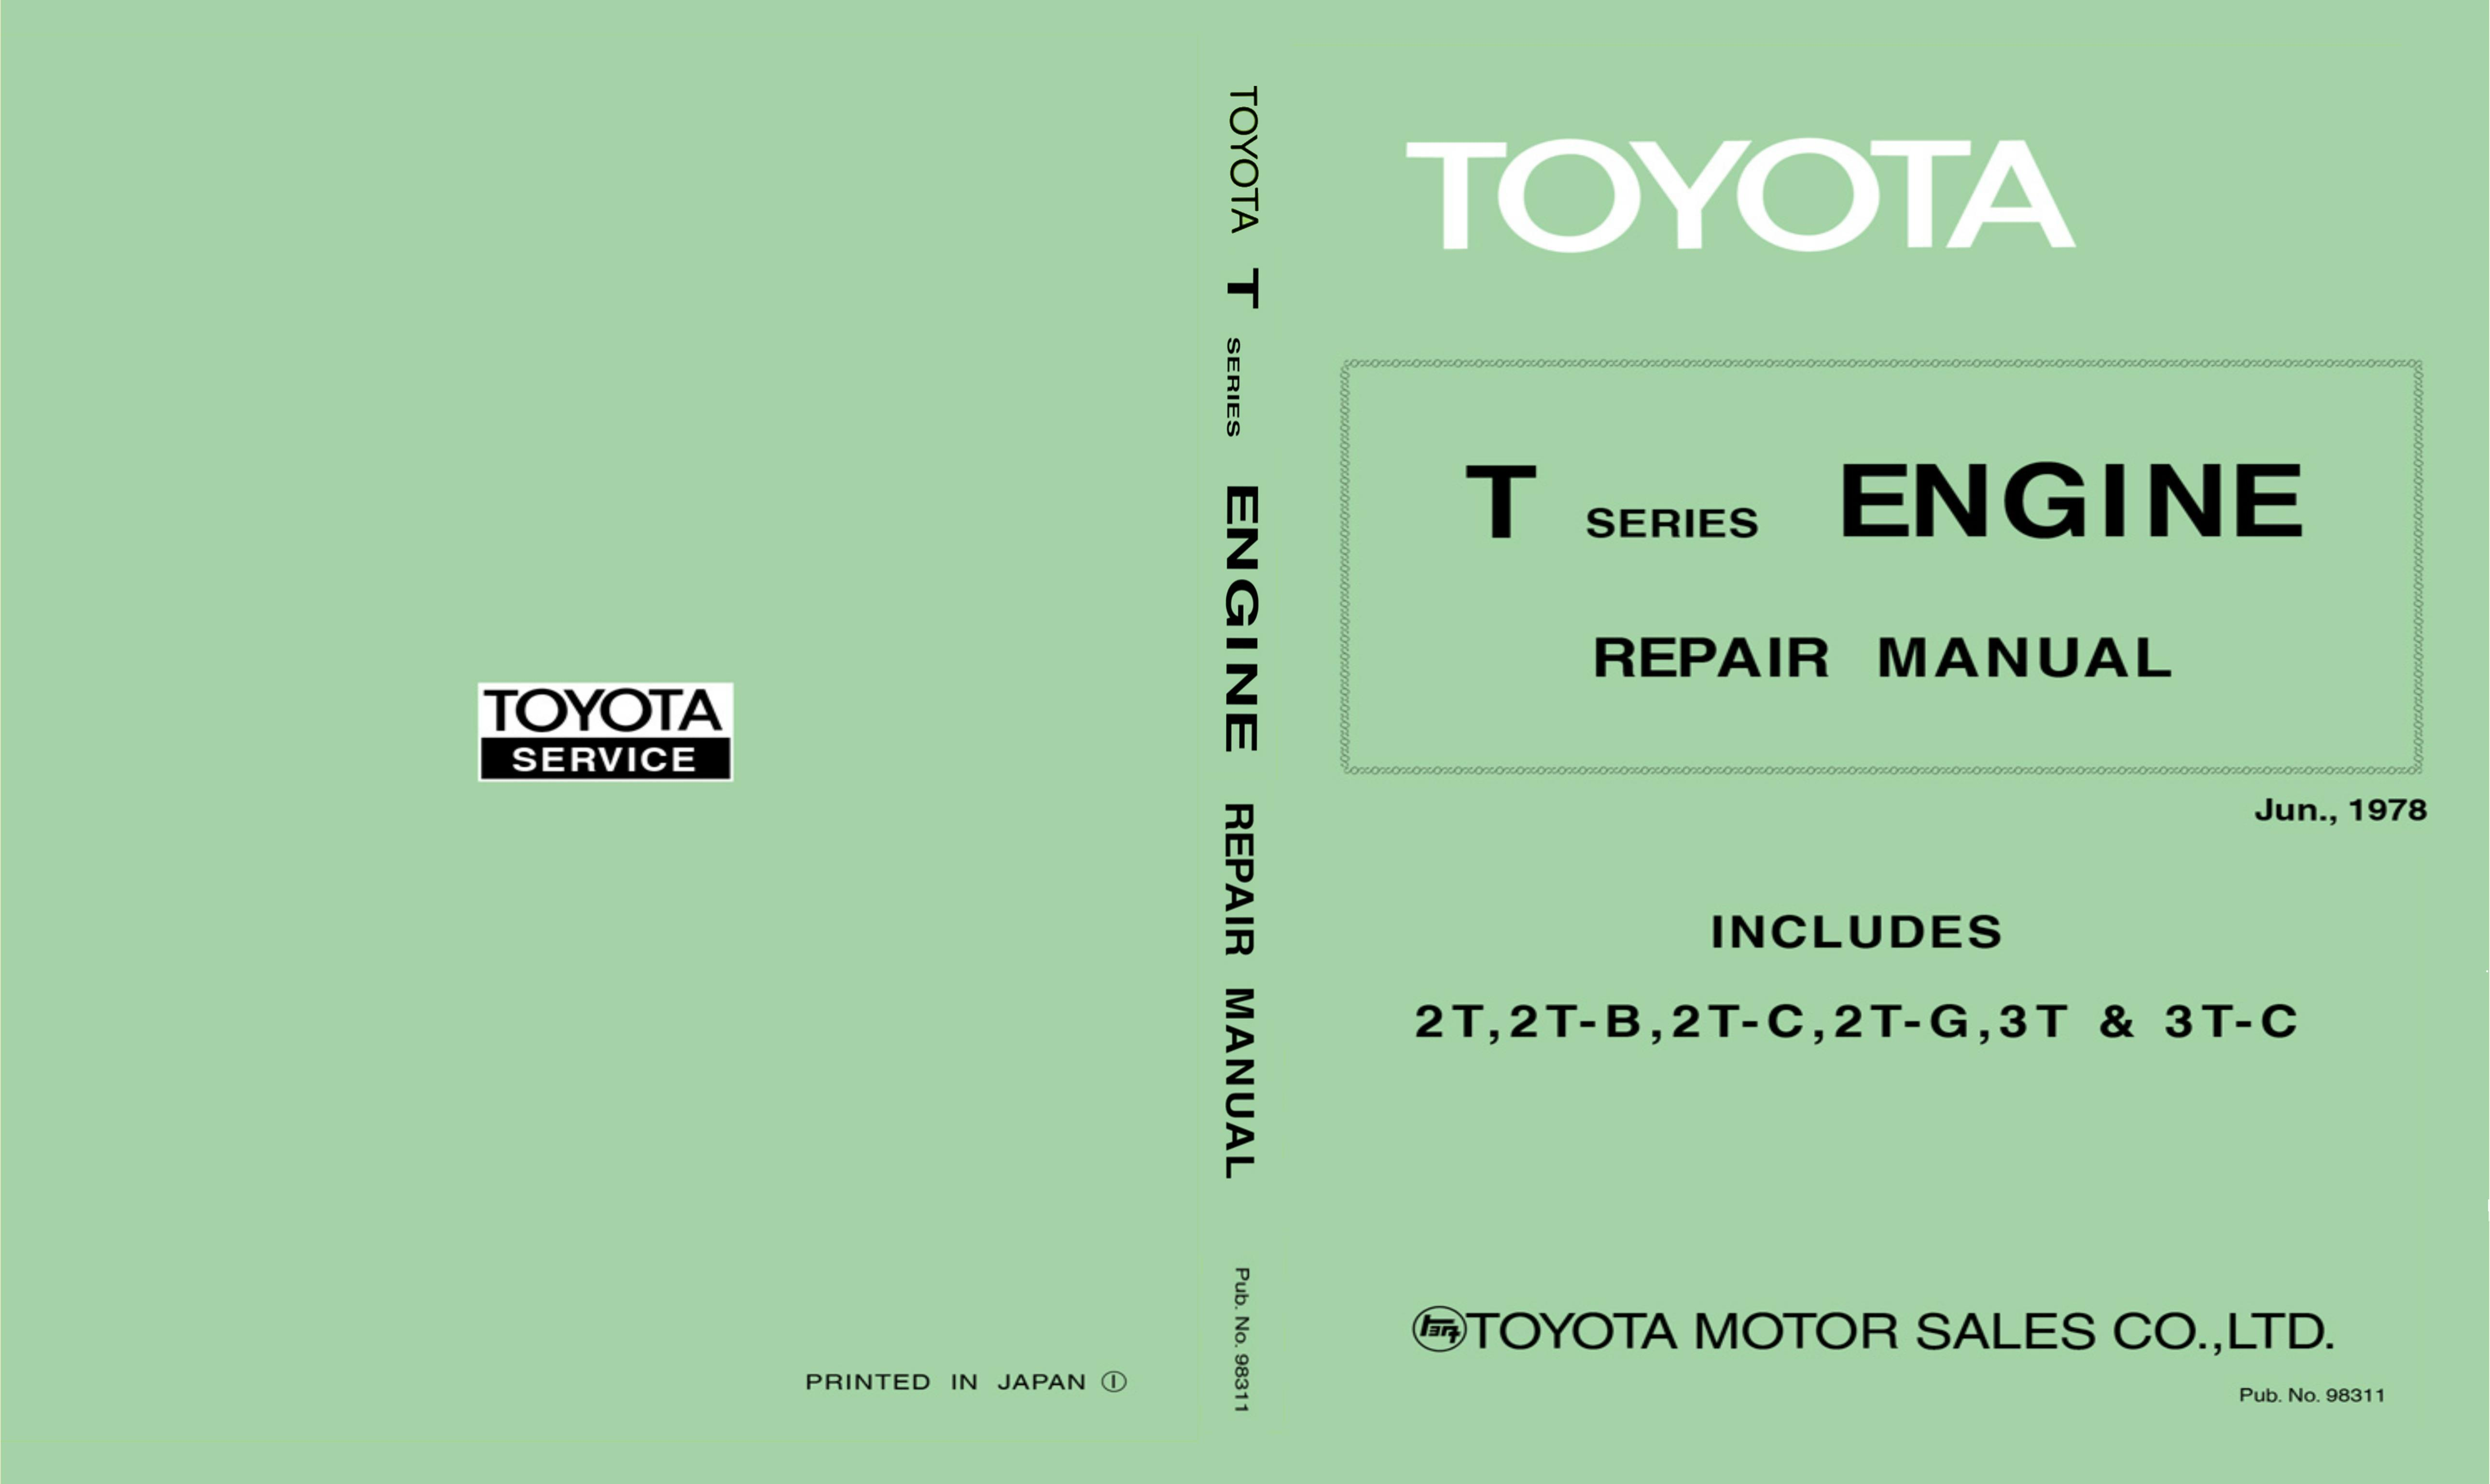 Toyota 2tg service Manual cover image